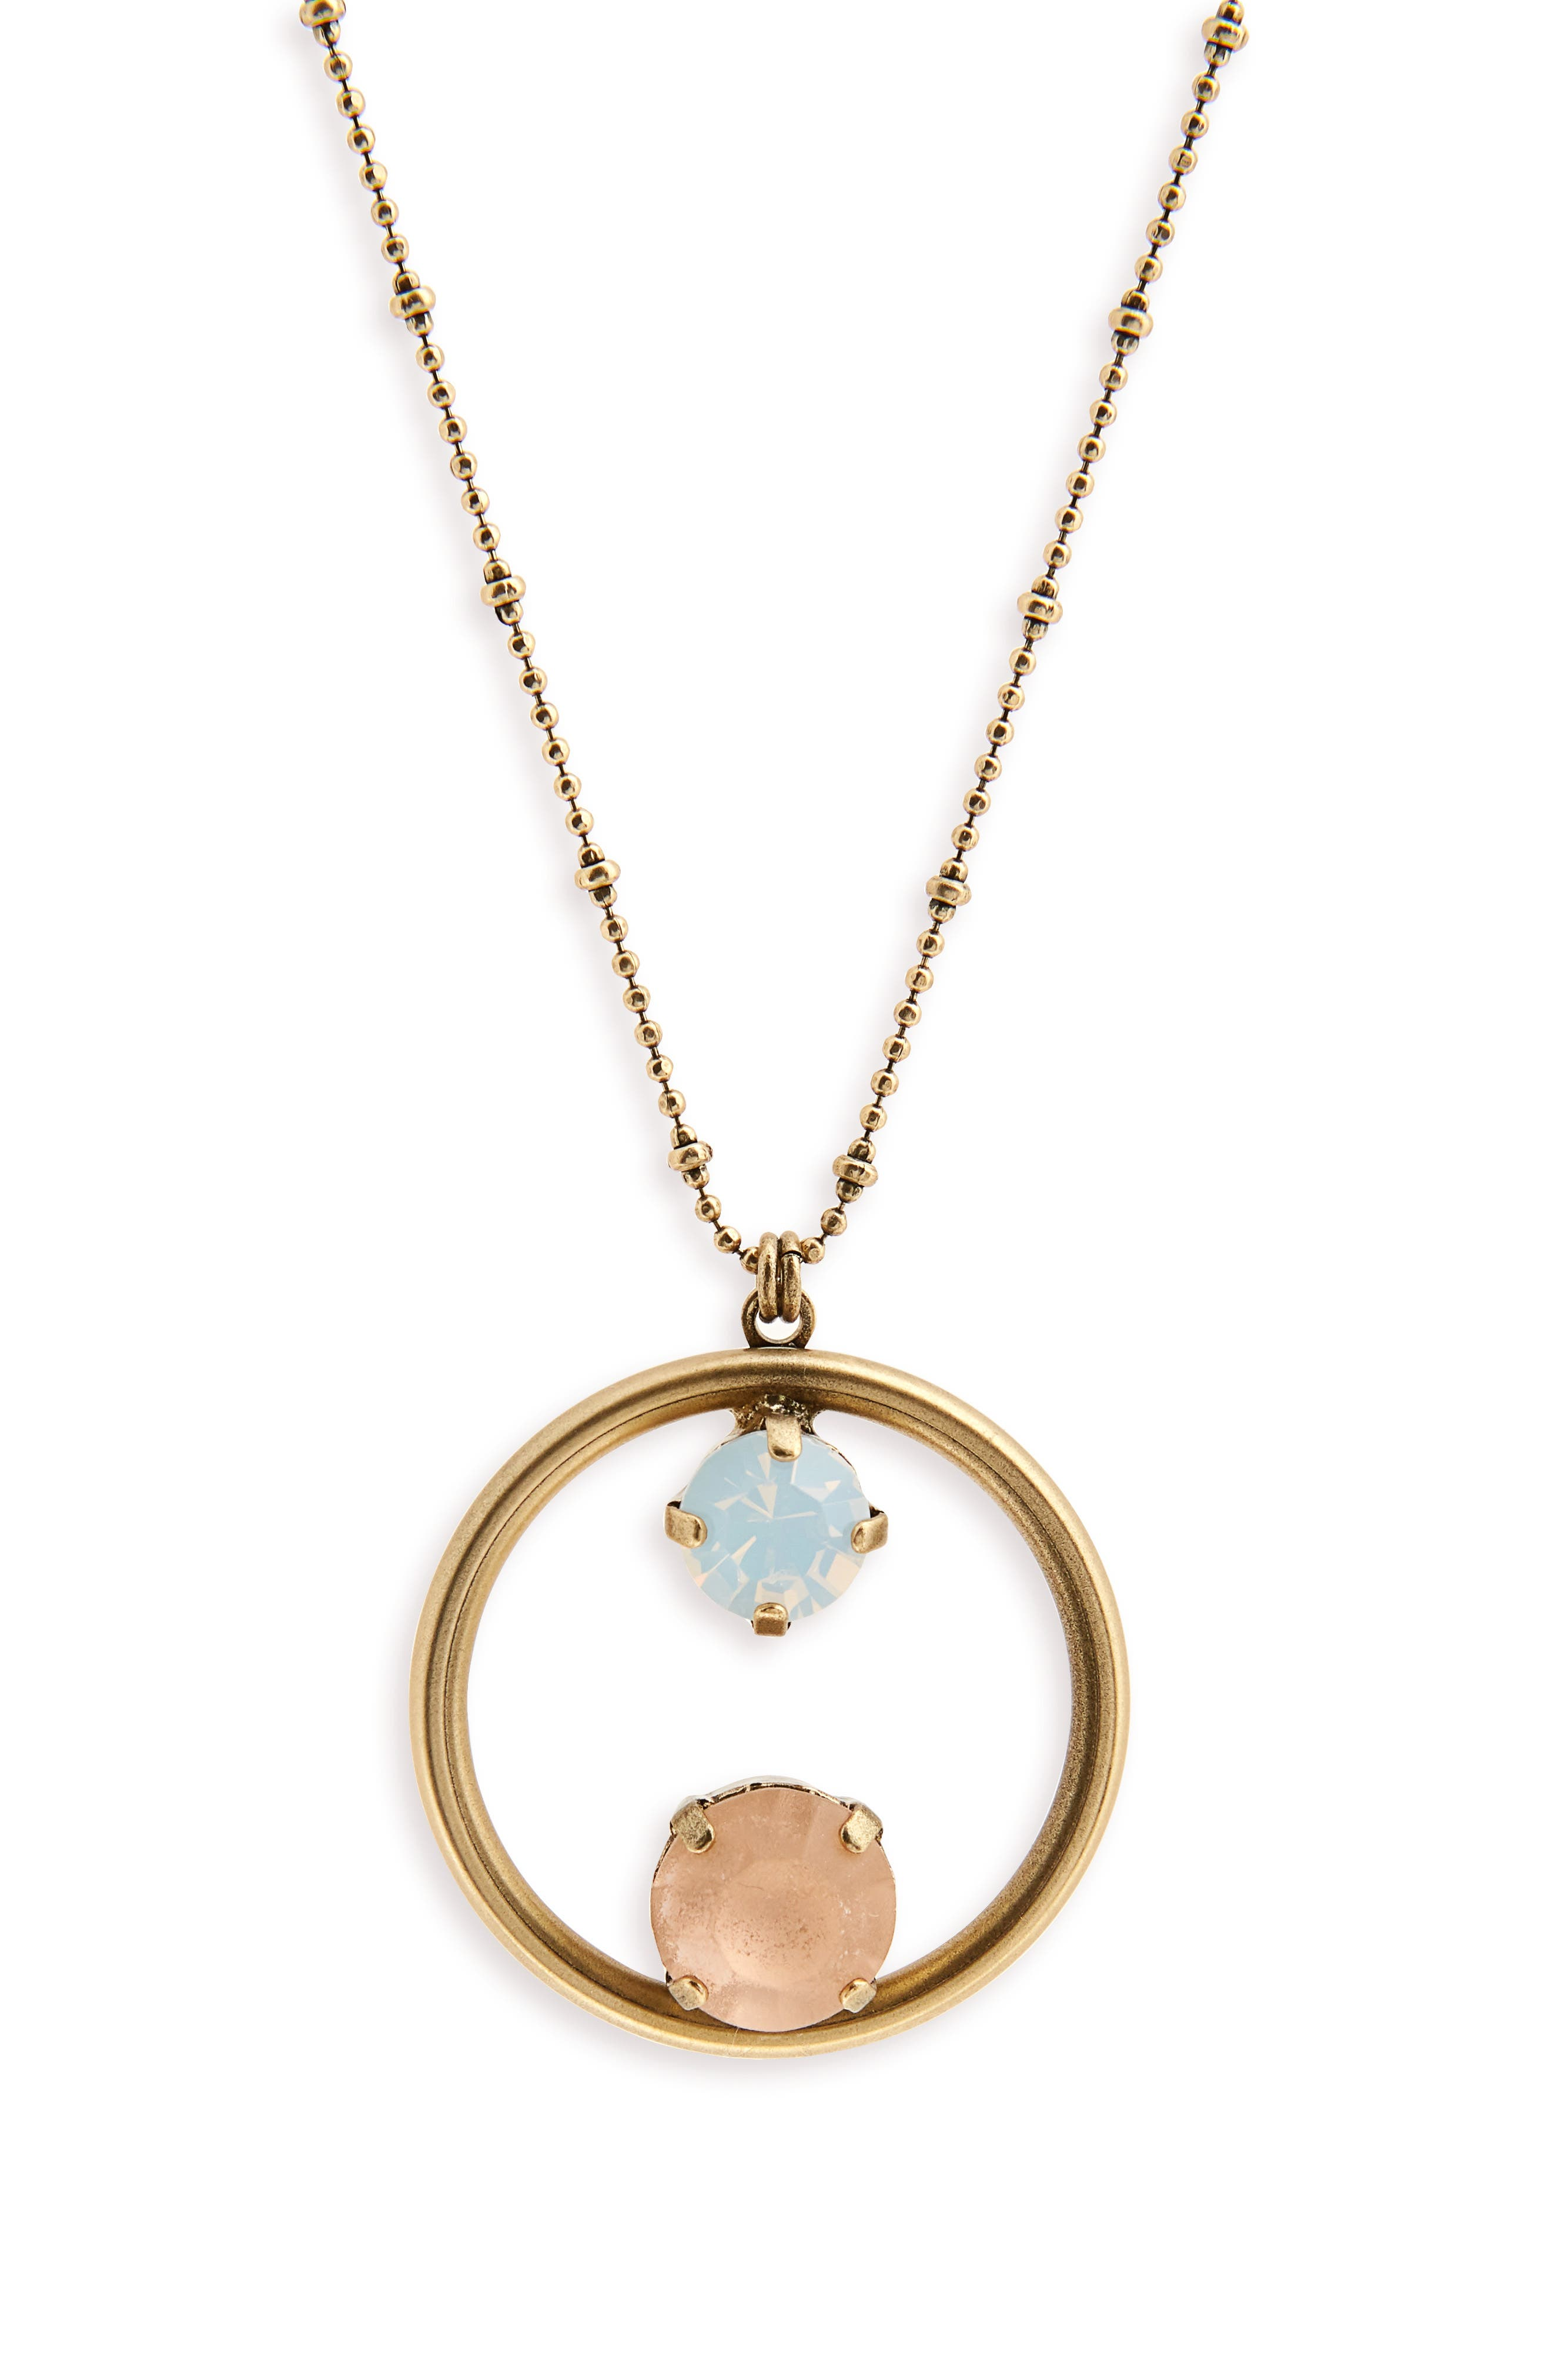 Loren Hope Cecelia Long Pendant Necklace